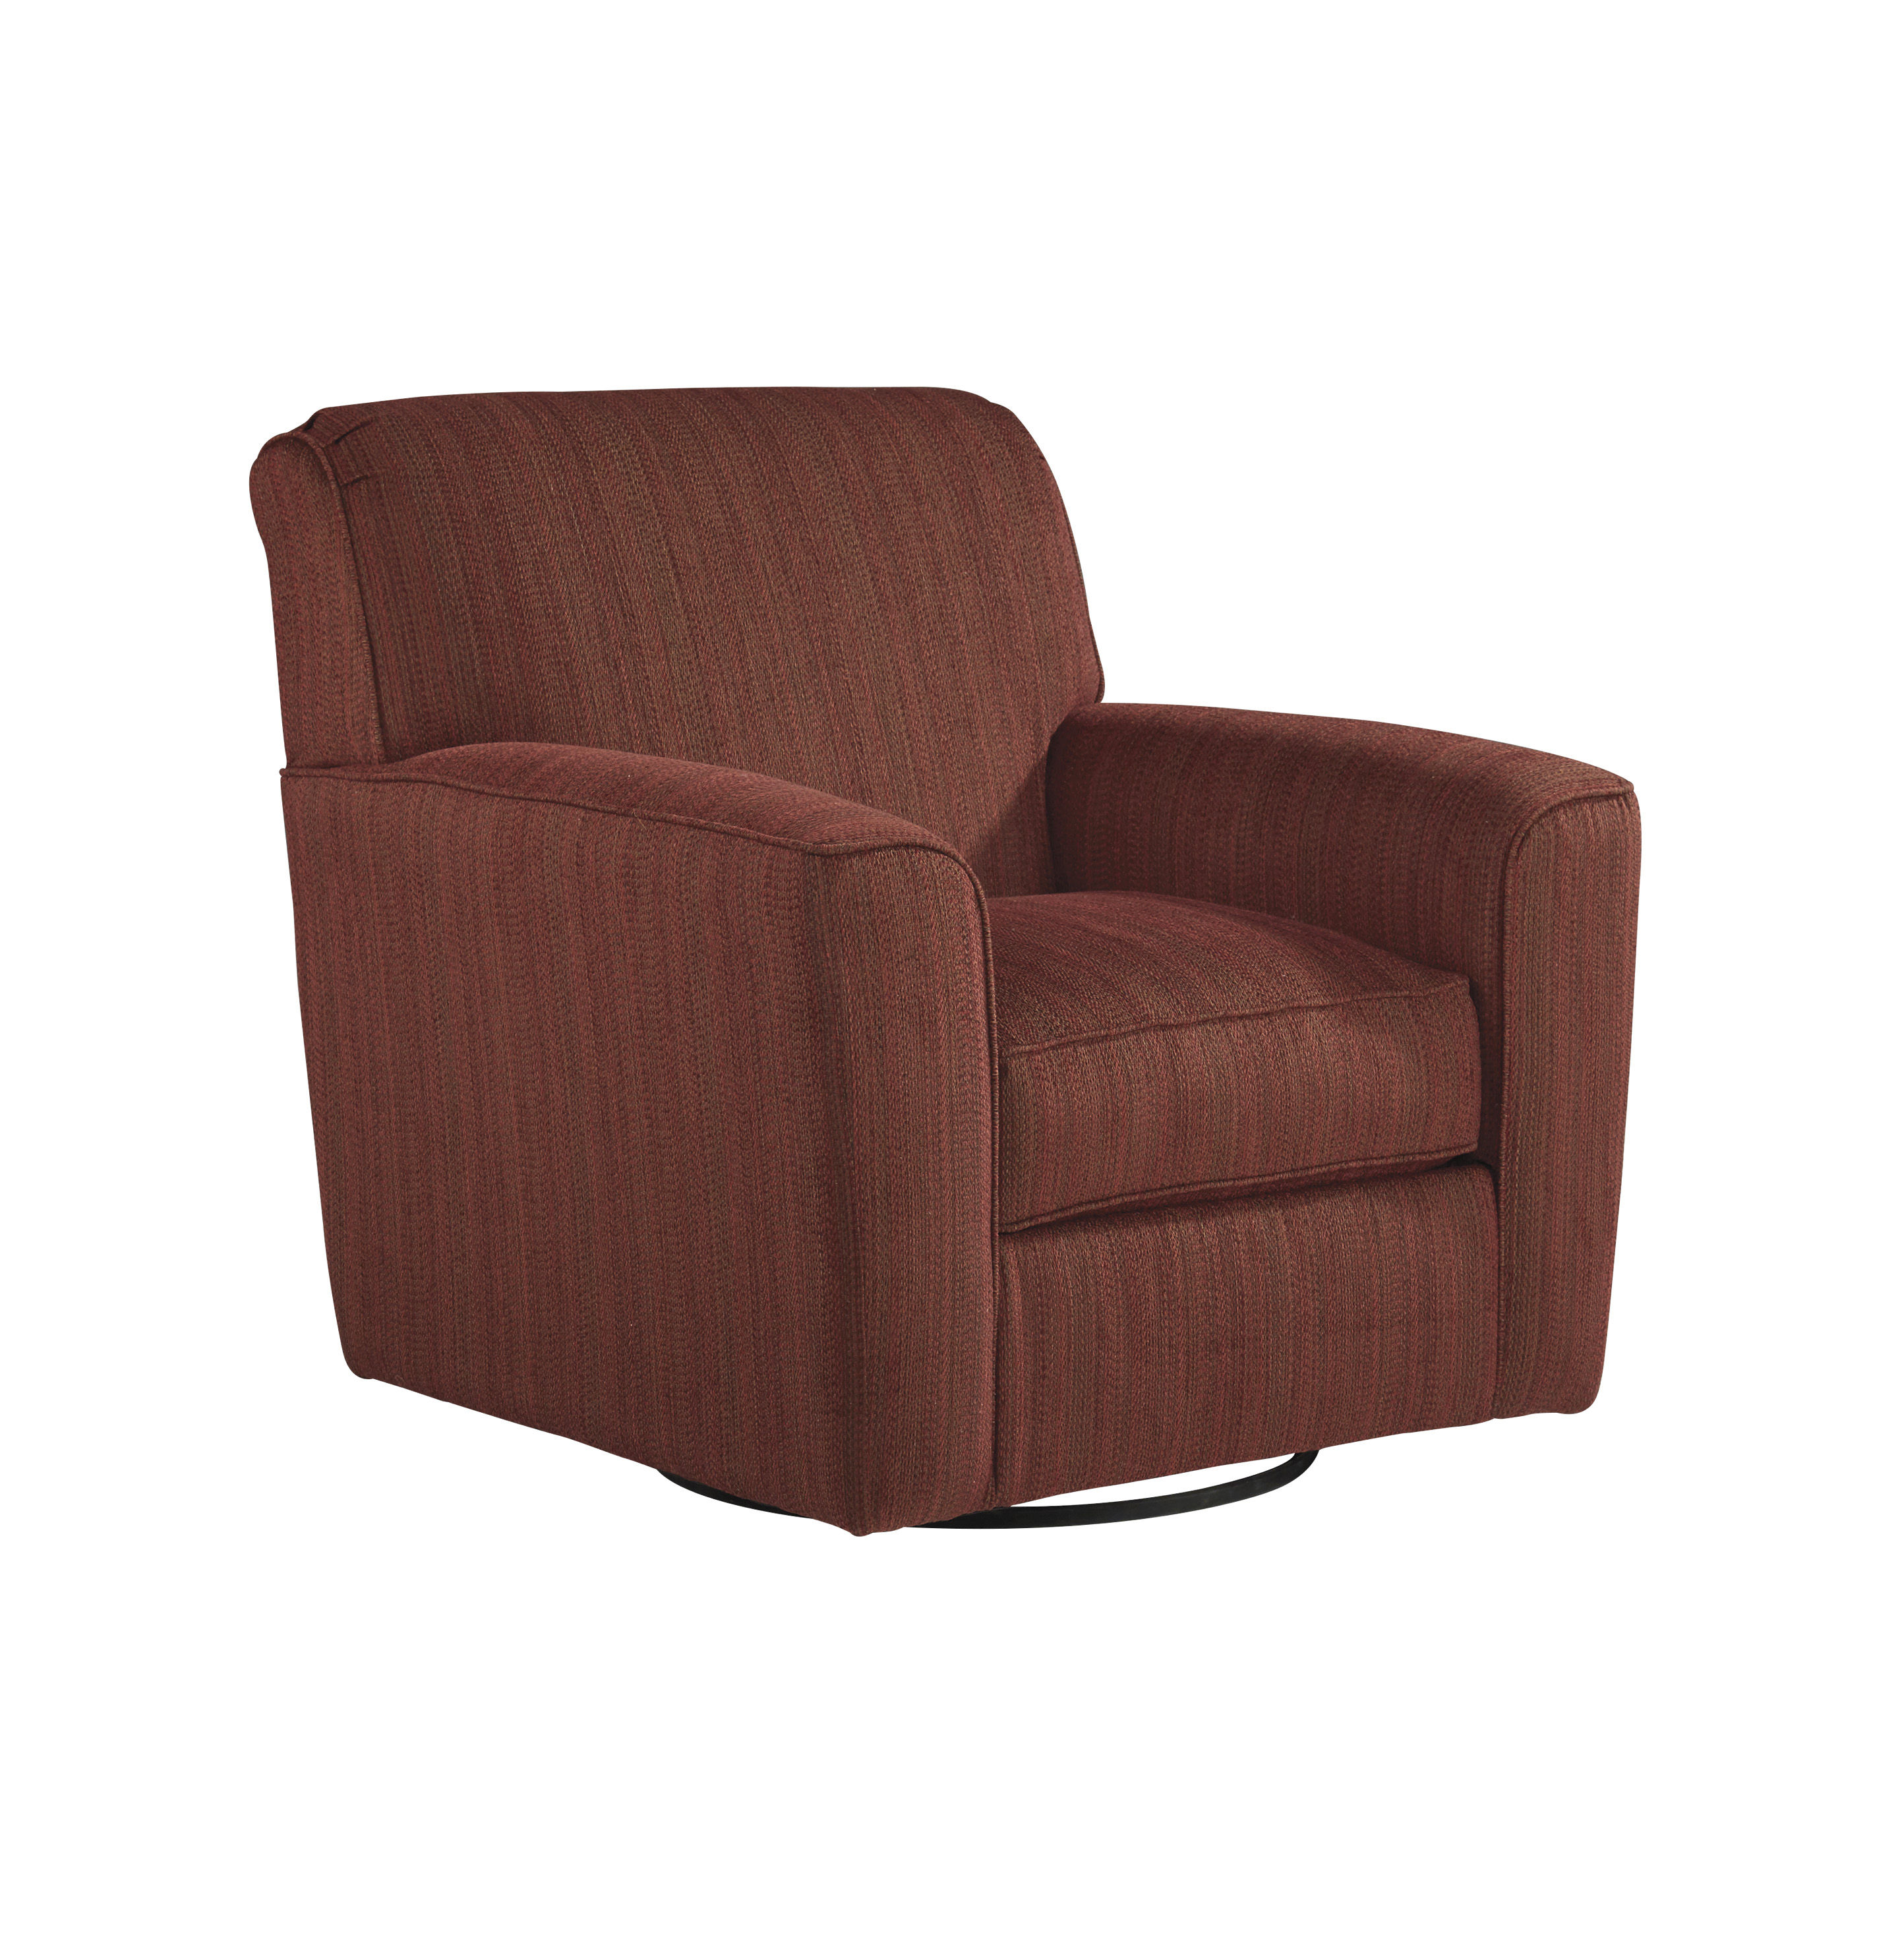 Doralin contemporary rustic fabric swivel accent chair for Modern swivel accent chair